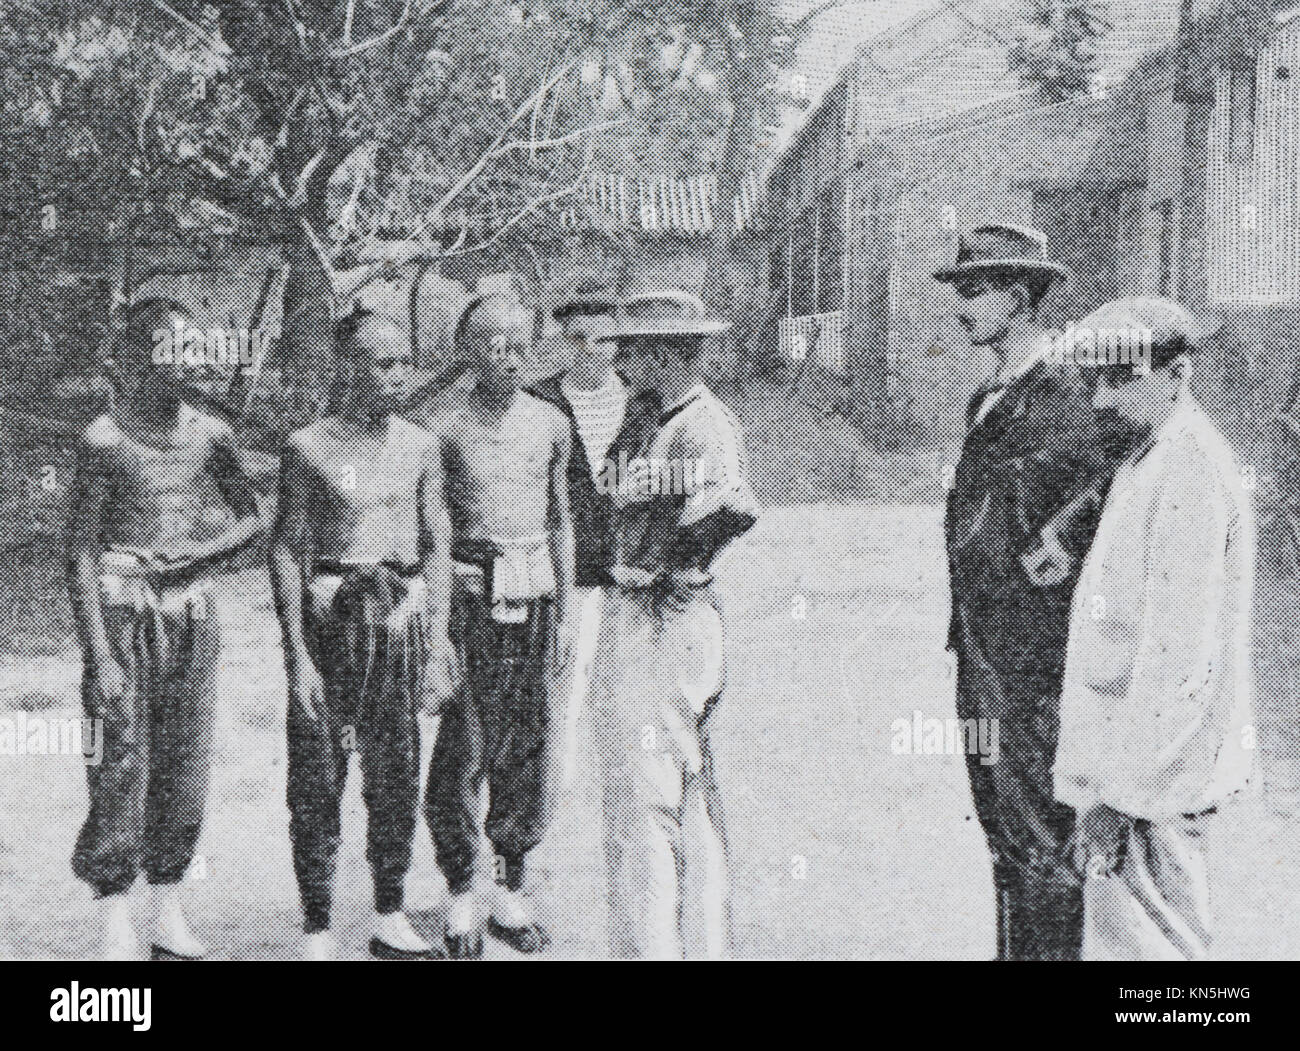 Boxer Rebellion 1900, Interrogation of Chinese prisoners, Picture from the French weekly newspaper l'Illustration, - Stock Image